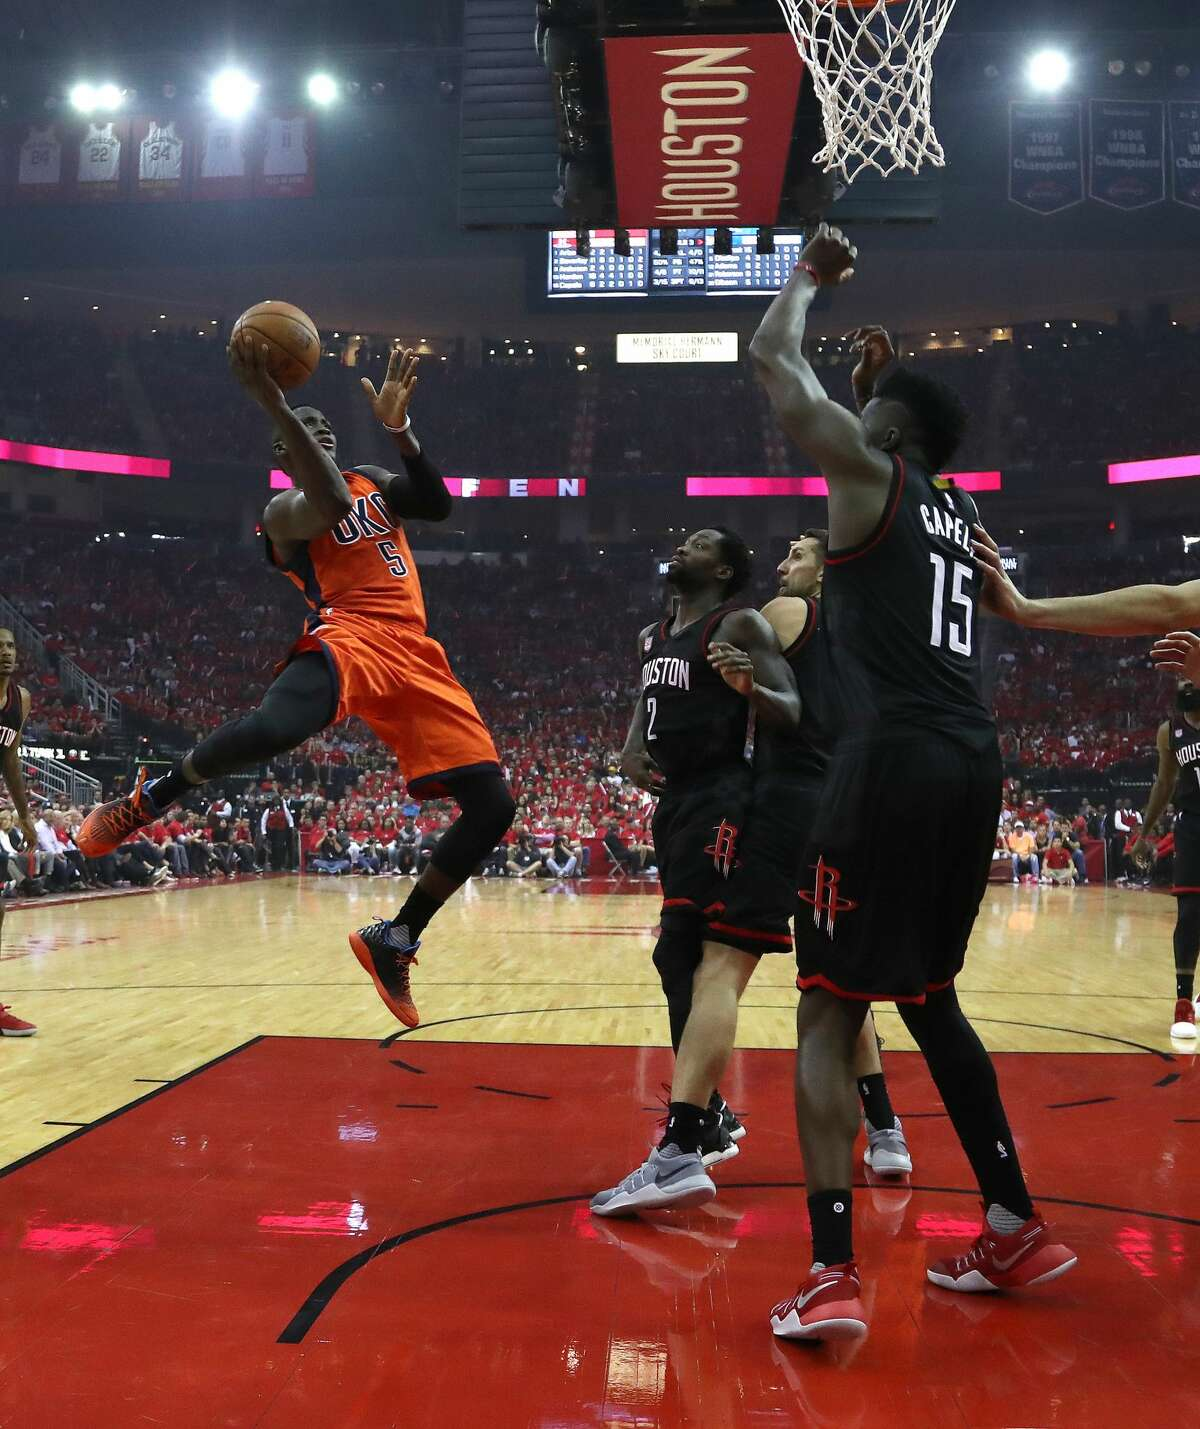 Oklahoma City Thunder guard Victor Oladipo (5) goes up for a basket during the first half of Game 1 of an NBA basketball first-round, Western Conference playoffs at the Toyota Center, Sunday April 16, 2017, in Houston. ( Karen Warren / Houston Chronicle )